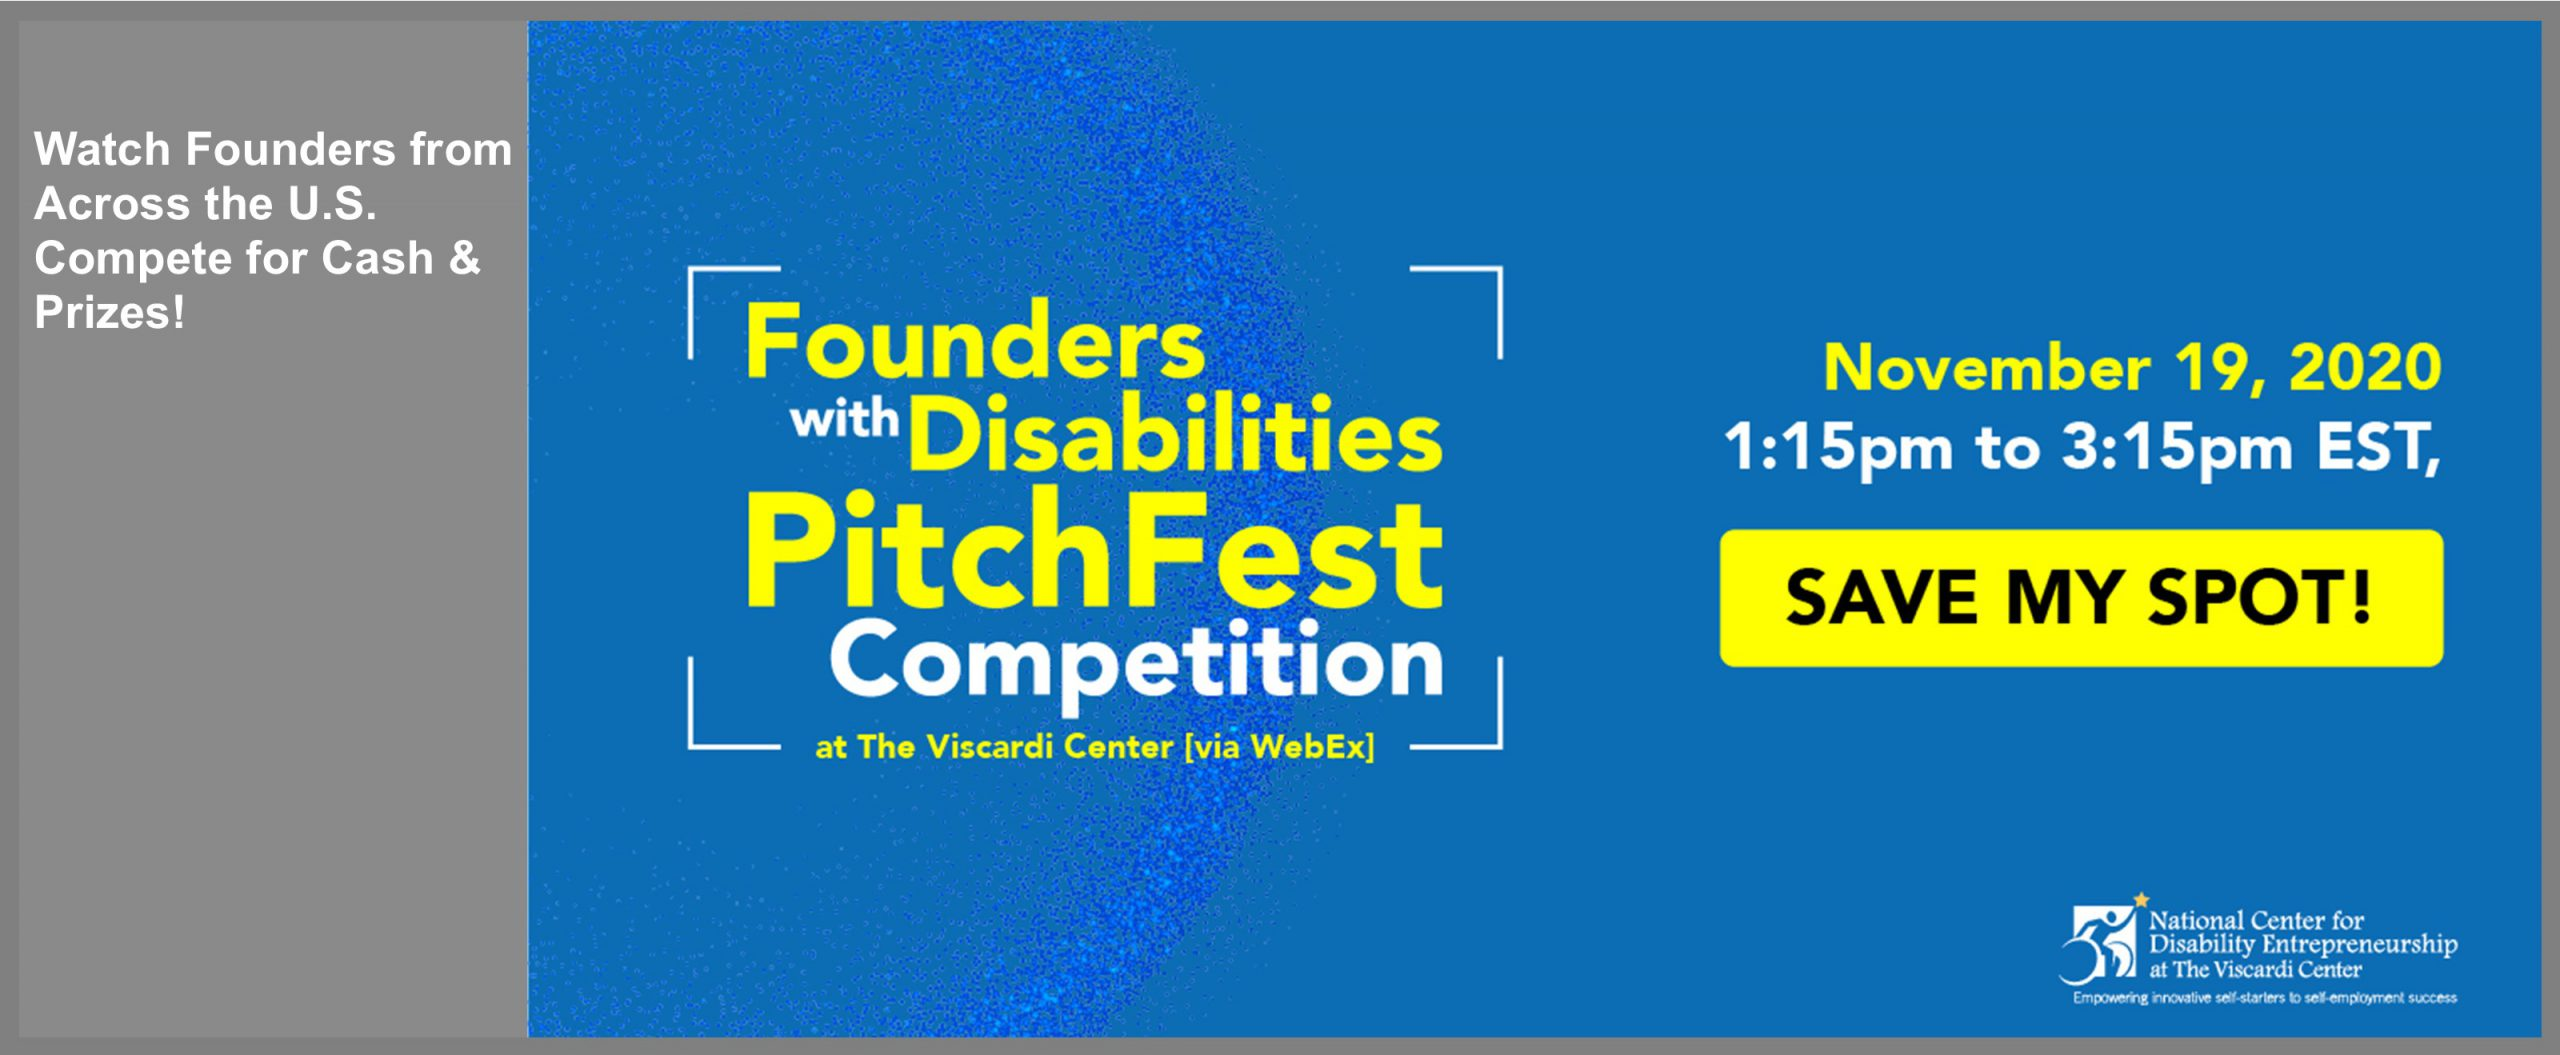 First-Ever Virtual Founders with Disabilities PitchFest Competition at The Viscardi Center